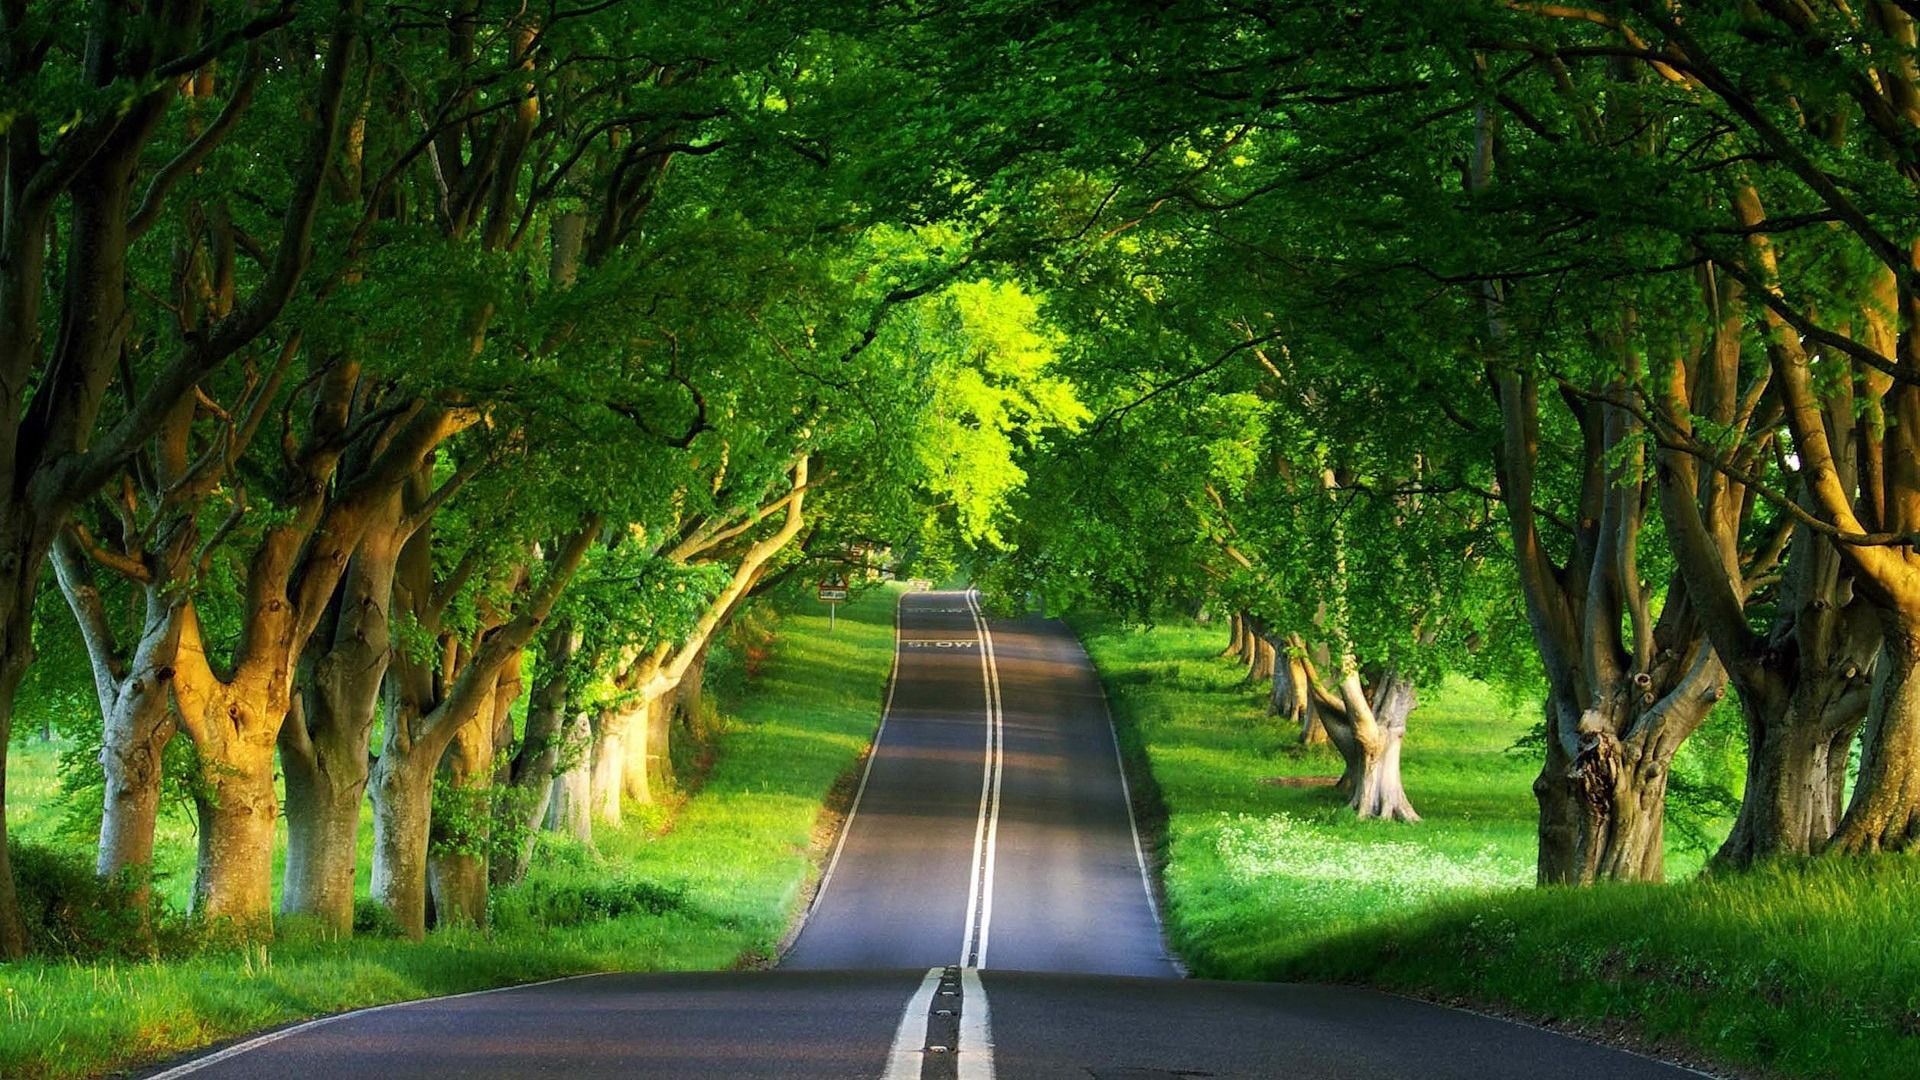 Beautiful Scenery Wallpaper Desktop Wallpaper Scenery Desktop Wallpapers Natural Beautiful Road Sum Nature Desktop Scenery Wallpaper Nature Desktop Wallpaper